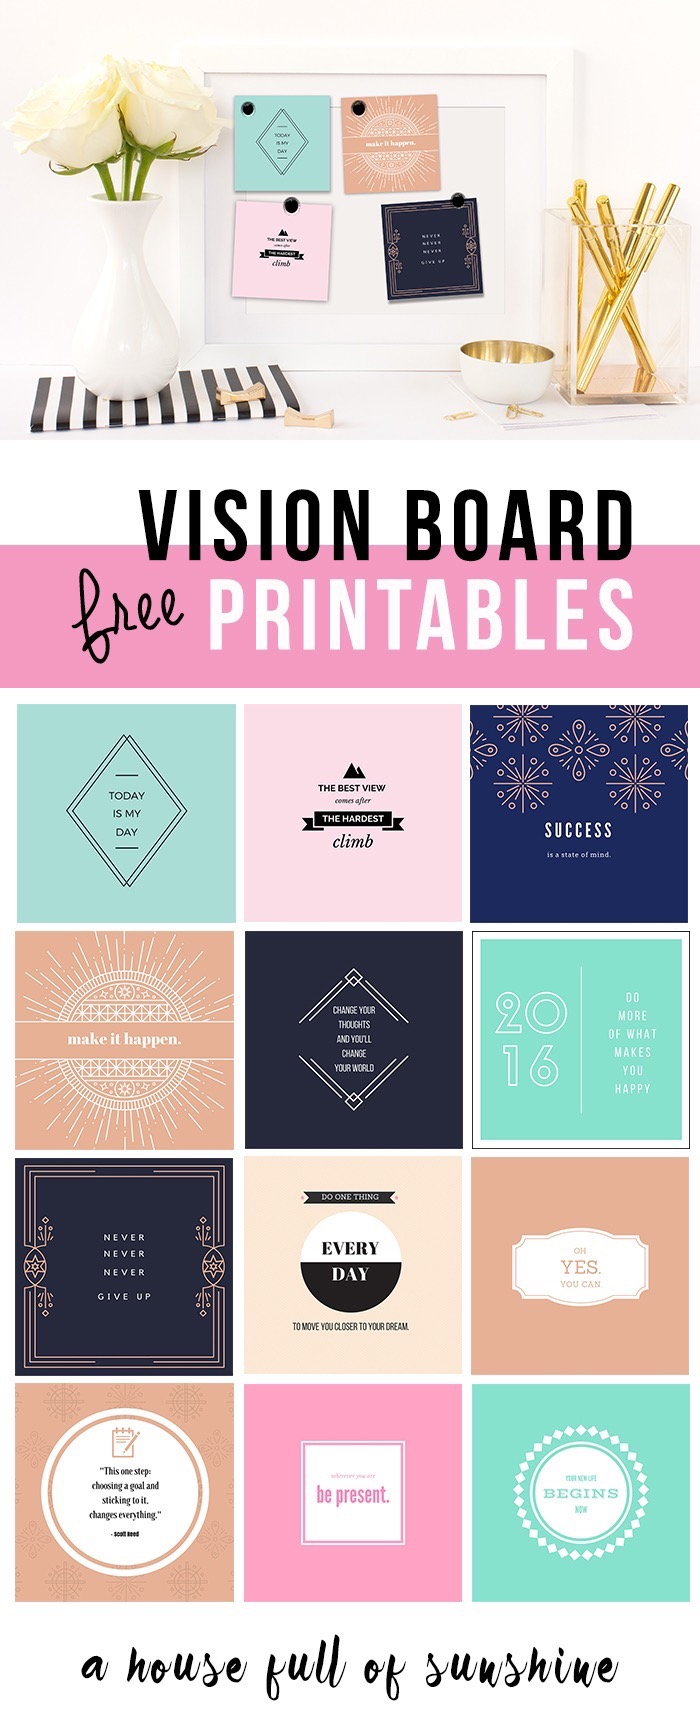 FREE 2017 Vision Board printables A House Full of Sunshine